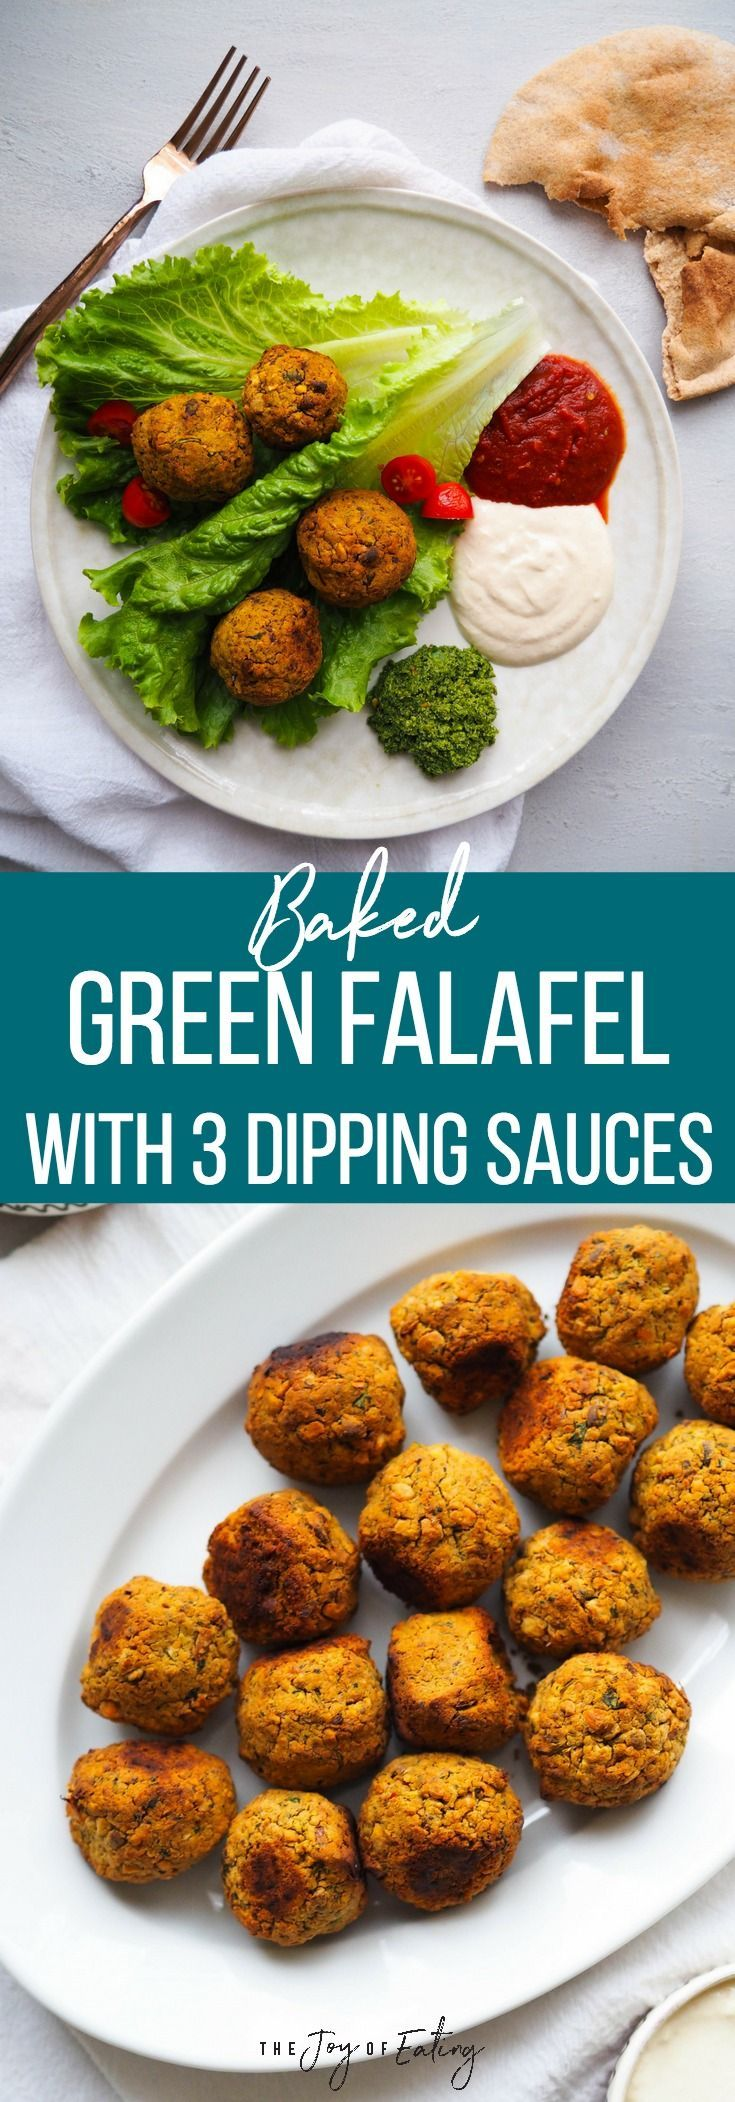 Make these easy baked green falafel, which come together in a food processor! They're studded with pistachios and tons of herbs! Serve with your choice of three dipping sauces - spicy harissa tomato sauce, tahini yogurt and green chutney! #vegan #vegetarian #healthyeating #falafel #chickpea